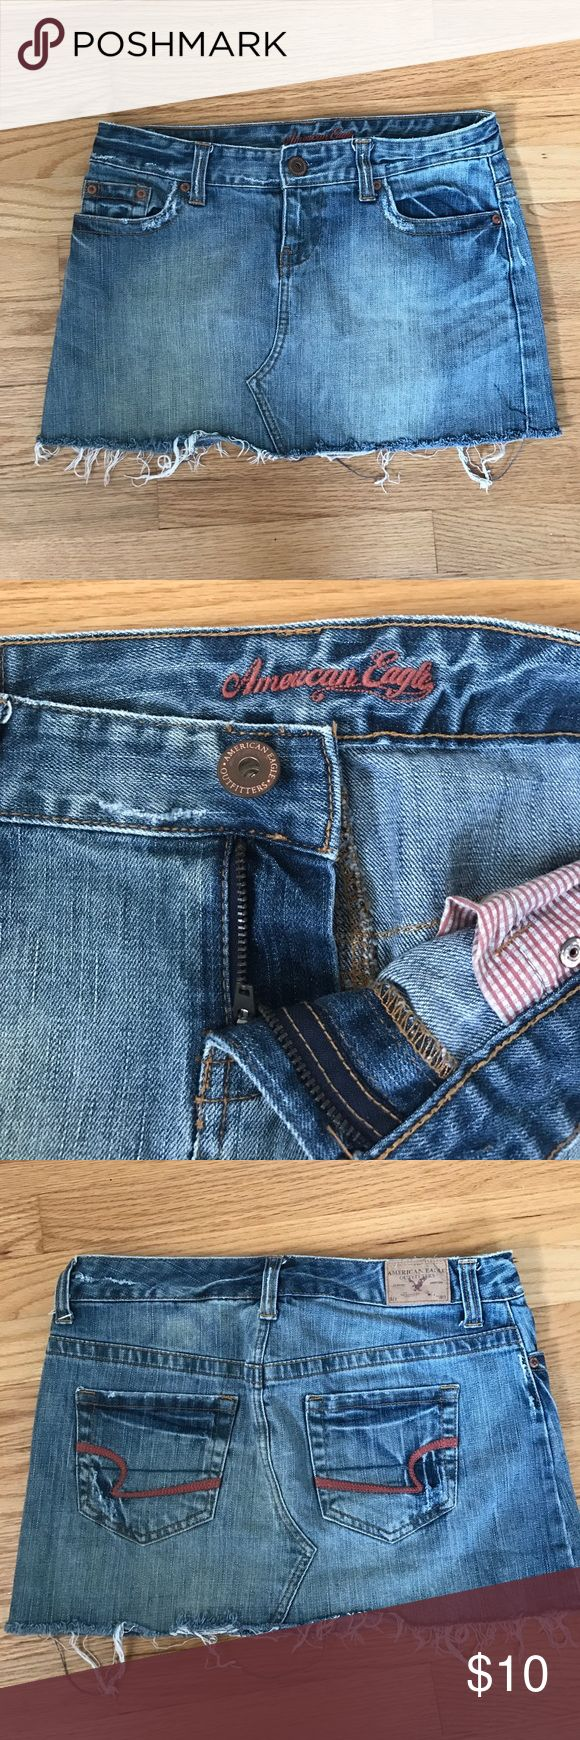 """Like New Distressed American Eagle Jean skirt Like new American Eagle distressed denim skirt. Gently worn but great condition - skirt design is made to look """"worn"""" or """"distressed"""" with hanging fringe and faded areas and slight intention rips around pockets etc. Size 4 American Eagle Outfitters Skirts Mini"""